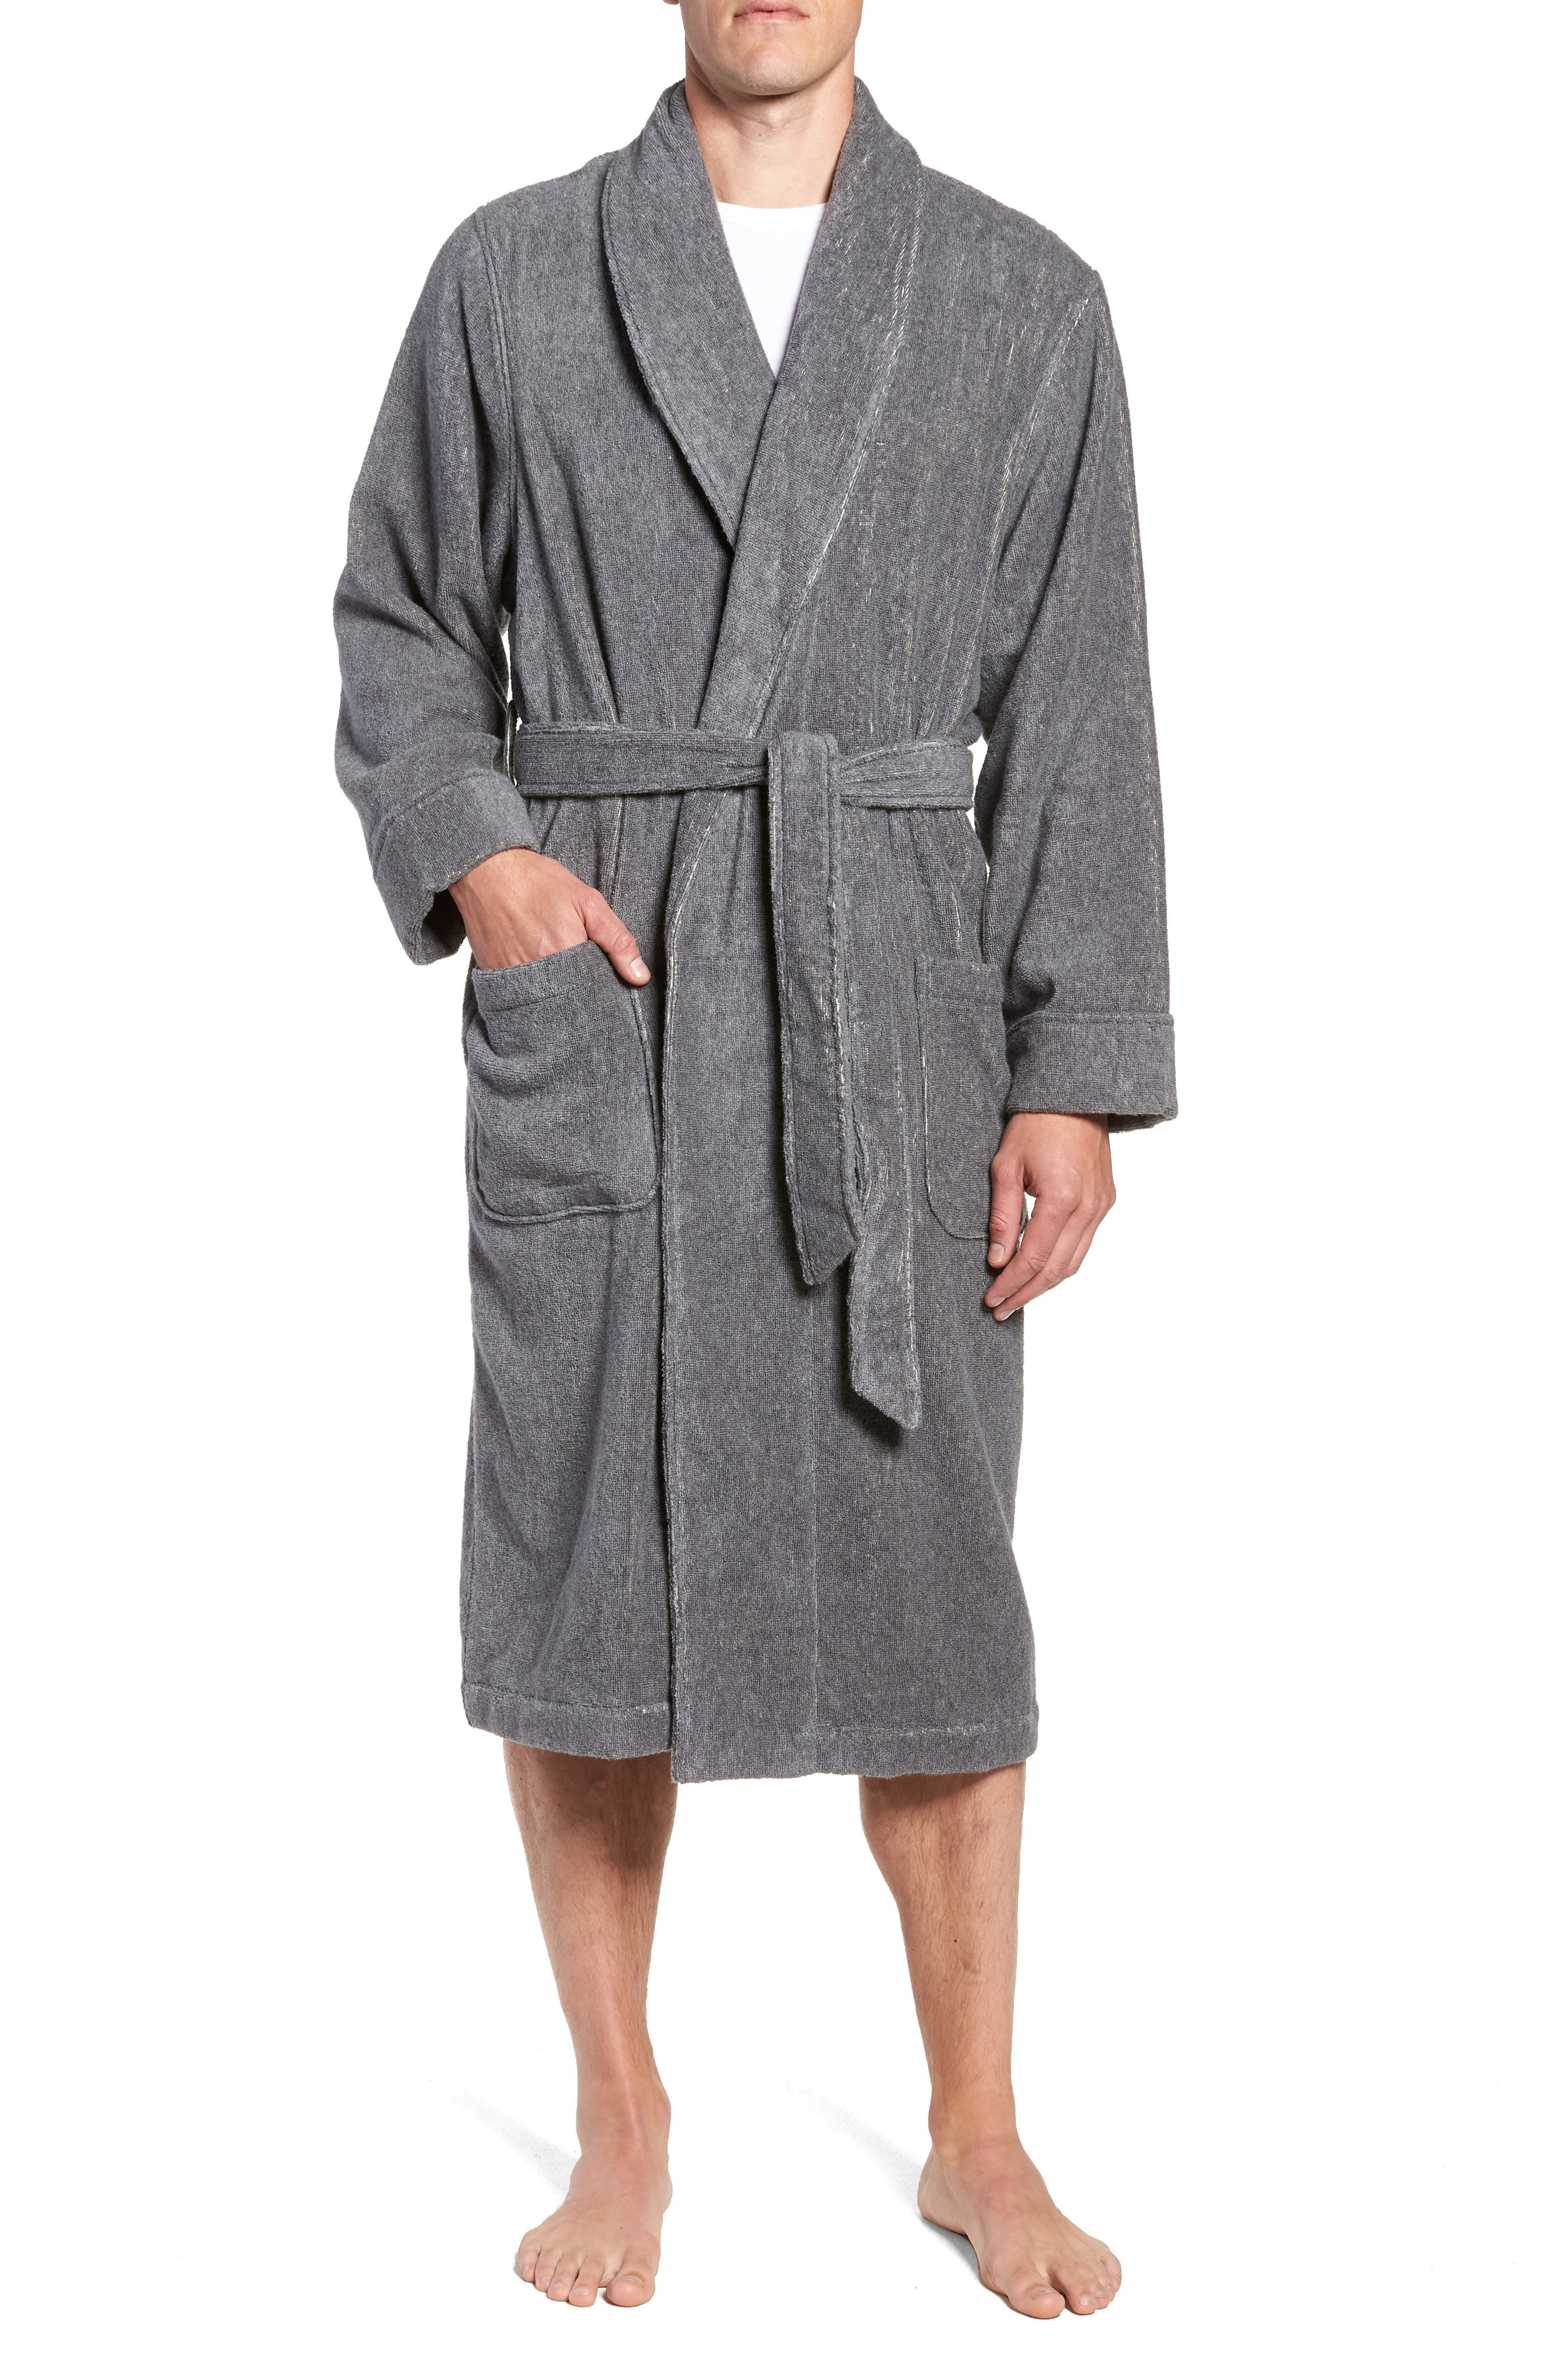 Hydro Cotton Terry Robe,                         Main,                         color, CHARCOAL HEATHER